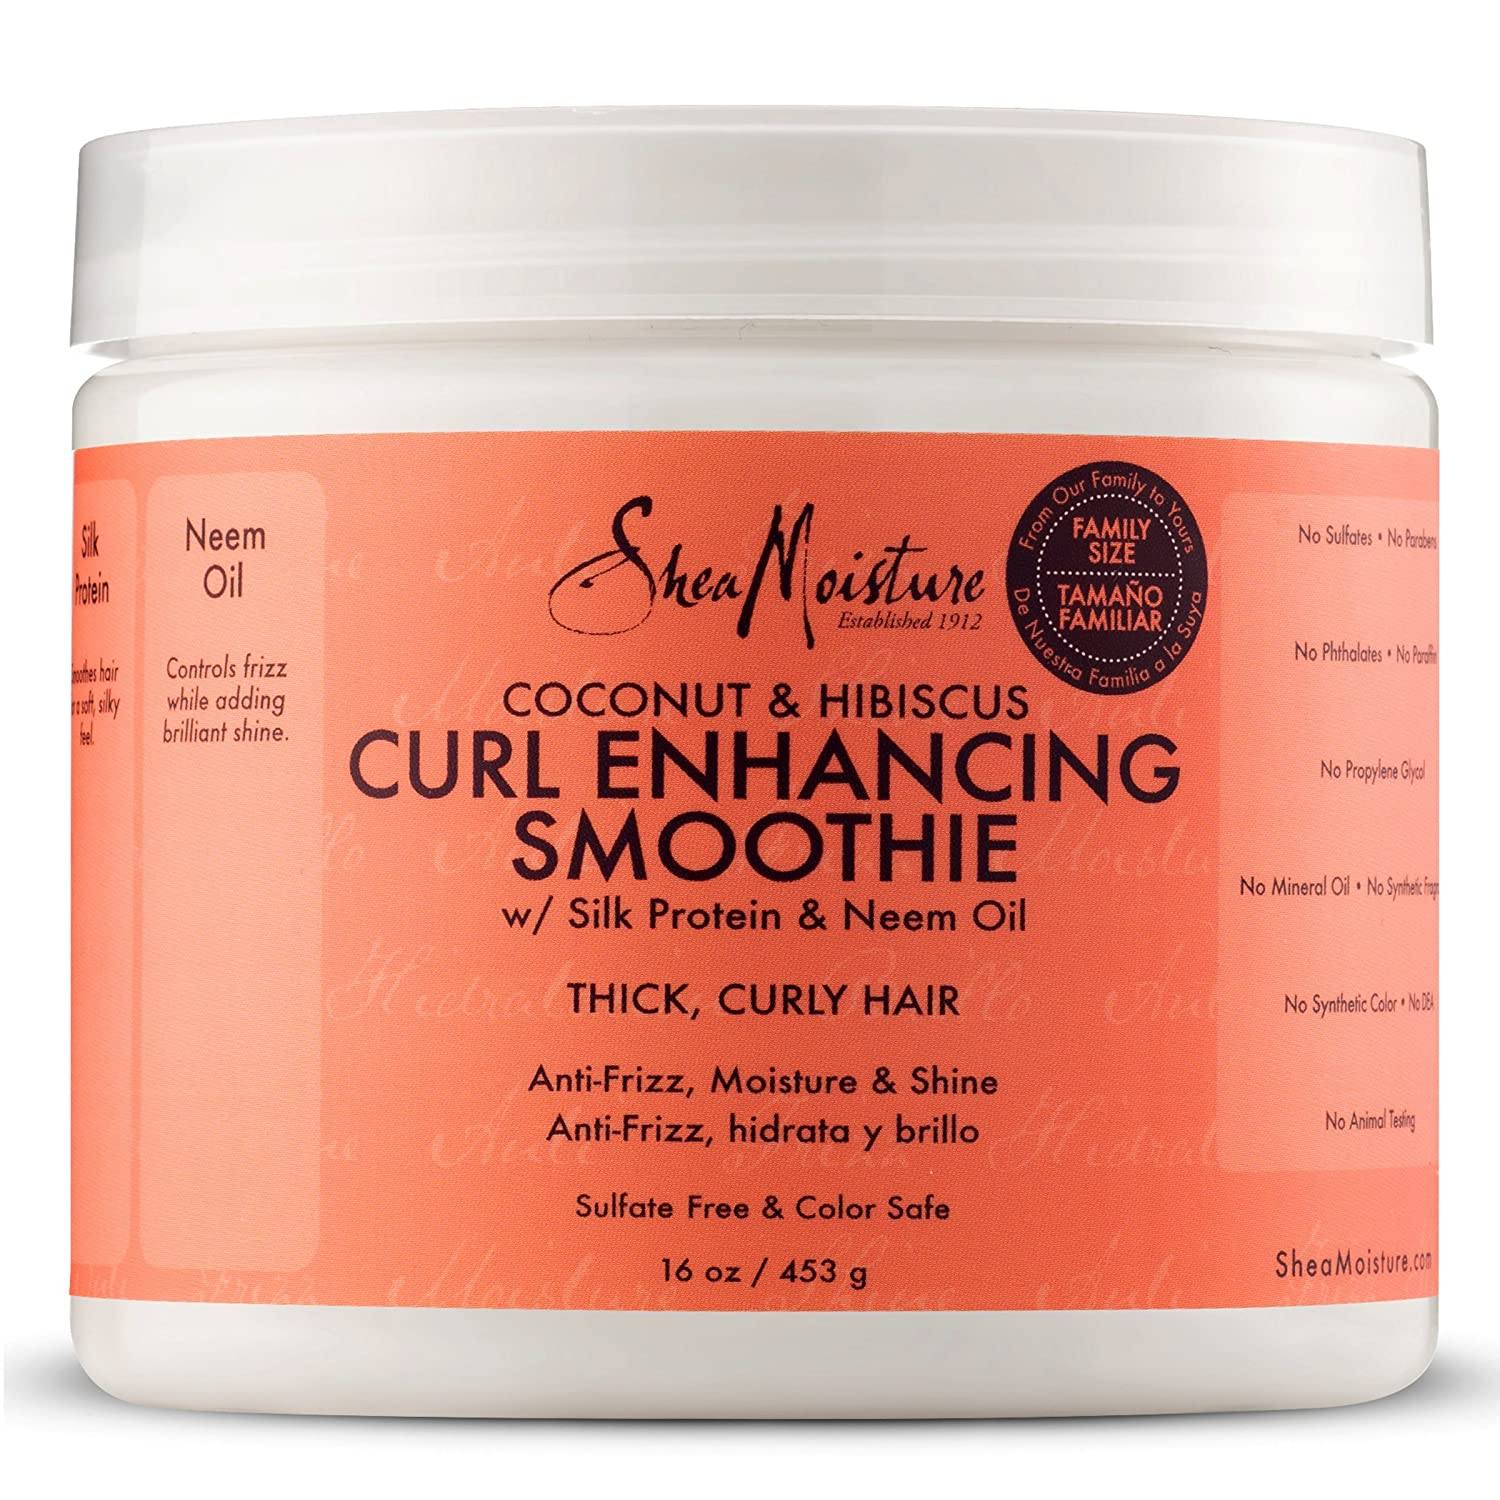 SheaMoisture Coconut and Hibiscus Curl Enhancing Smoothie | Family Size | 16 oz. B0118Q5I2Y